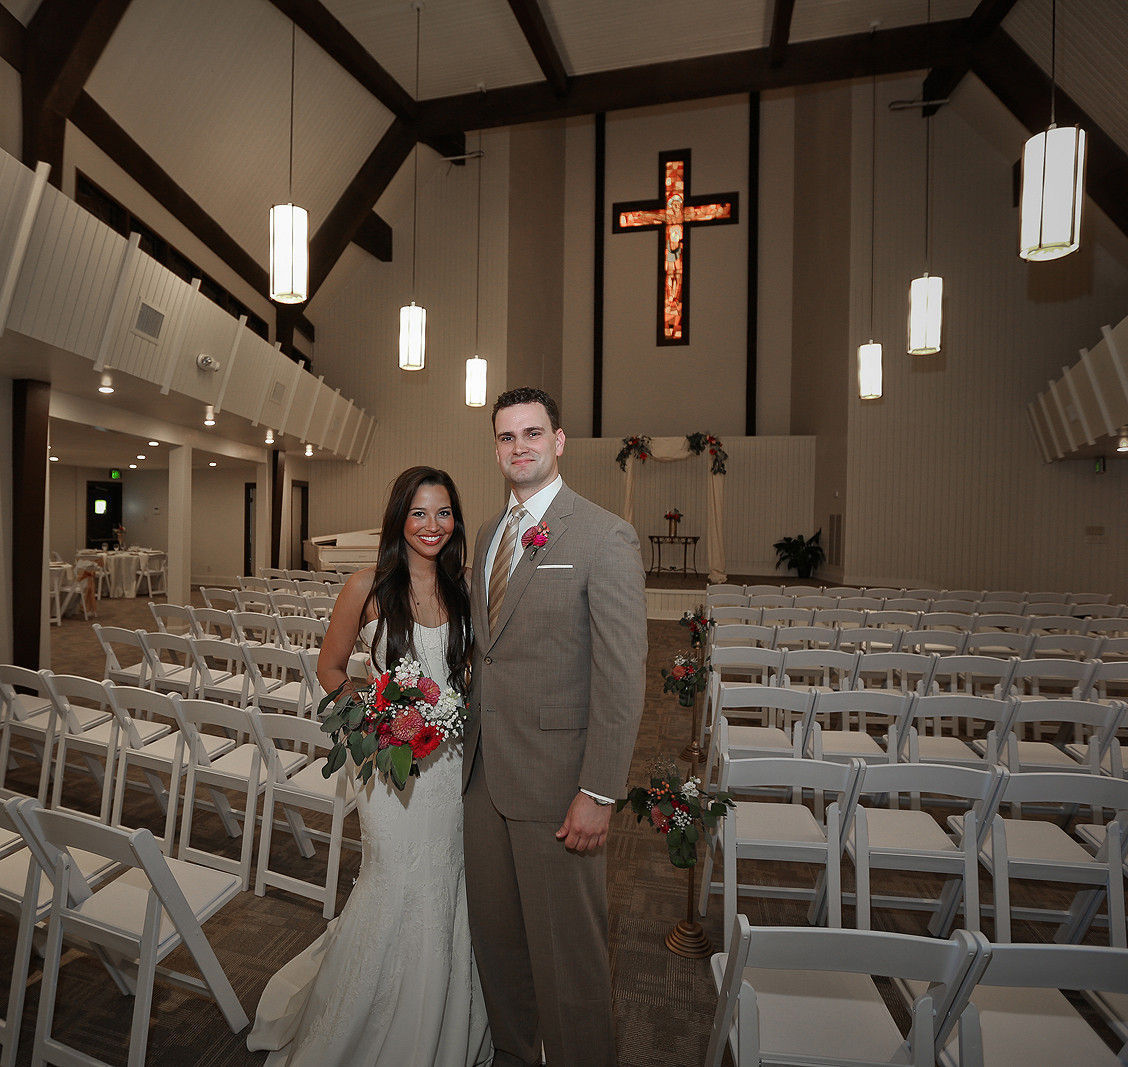 Overton chapel venue memphis tn weddingwire for Wedding dress rental memphis tn